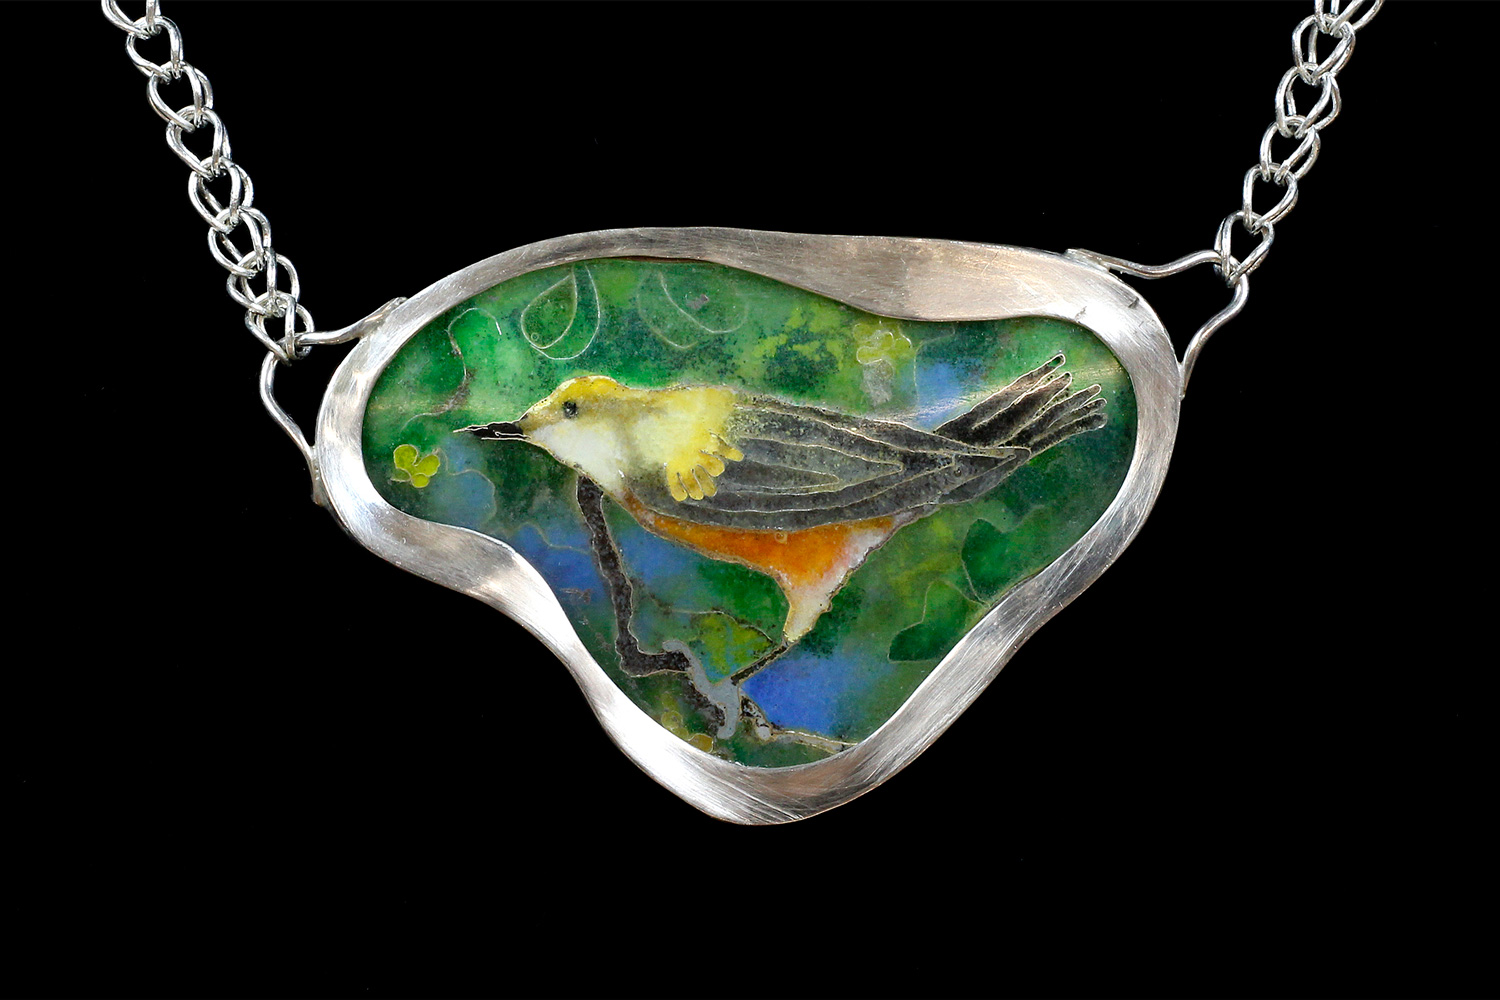 Bird in Tree, two-sided pendant necklace. Silver, enamel, fine silver handwoven chain. 4 cm x 6.2 cm. $2500